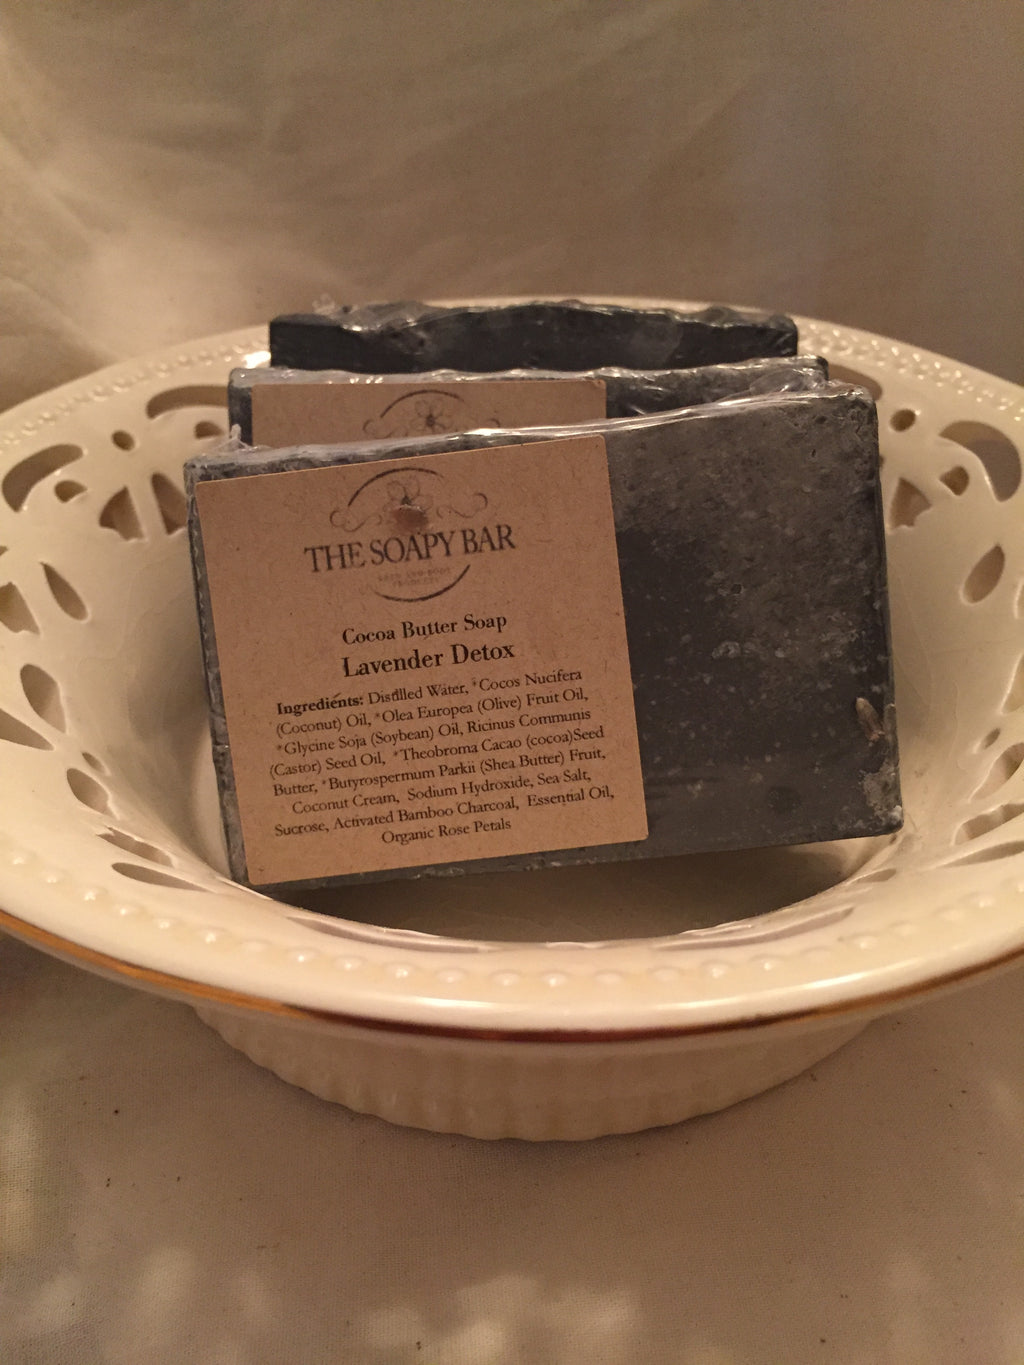 Lemongrass Charcoal Detox Soap - thesoapybar